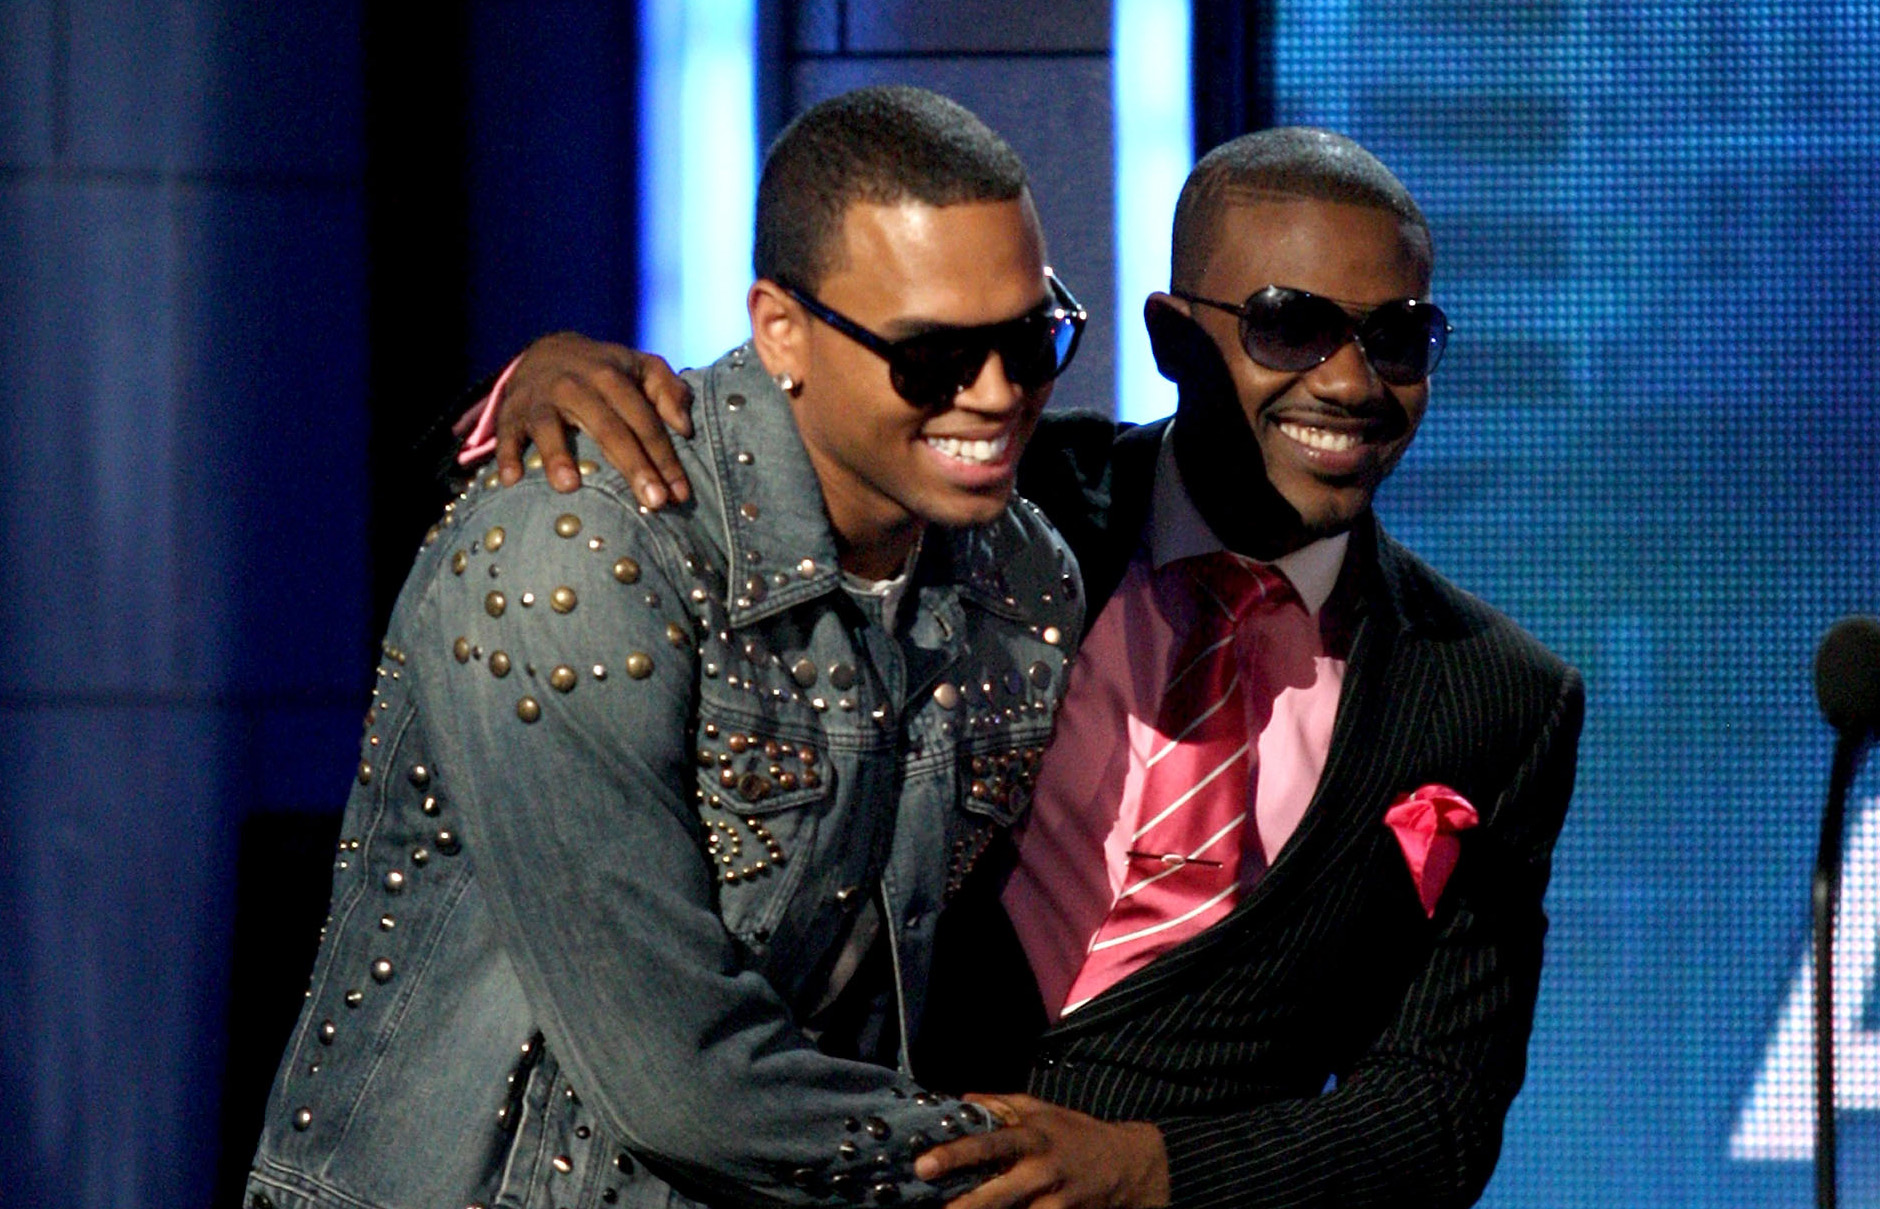 Chris Brown and Ray J